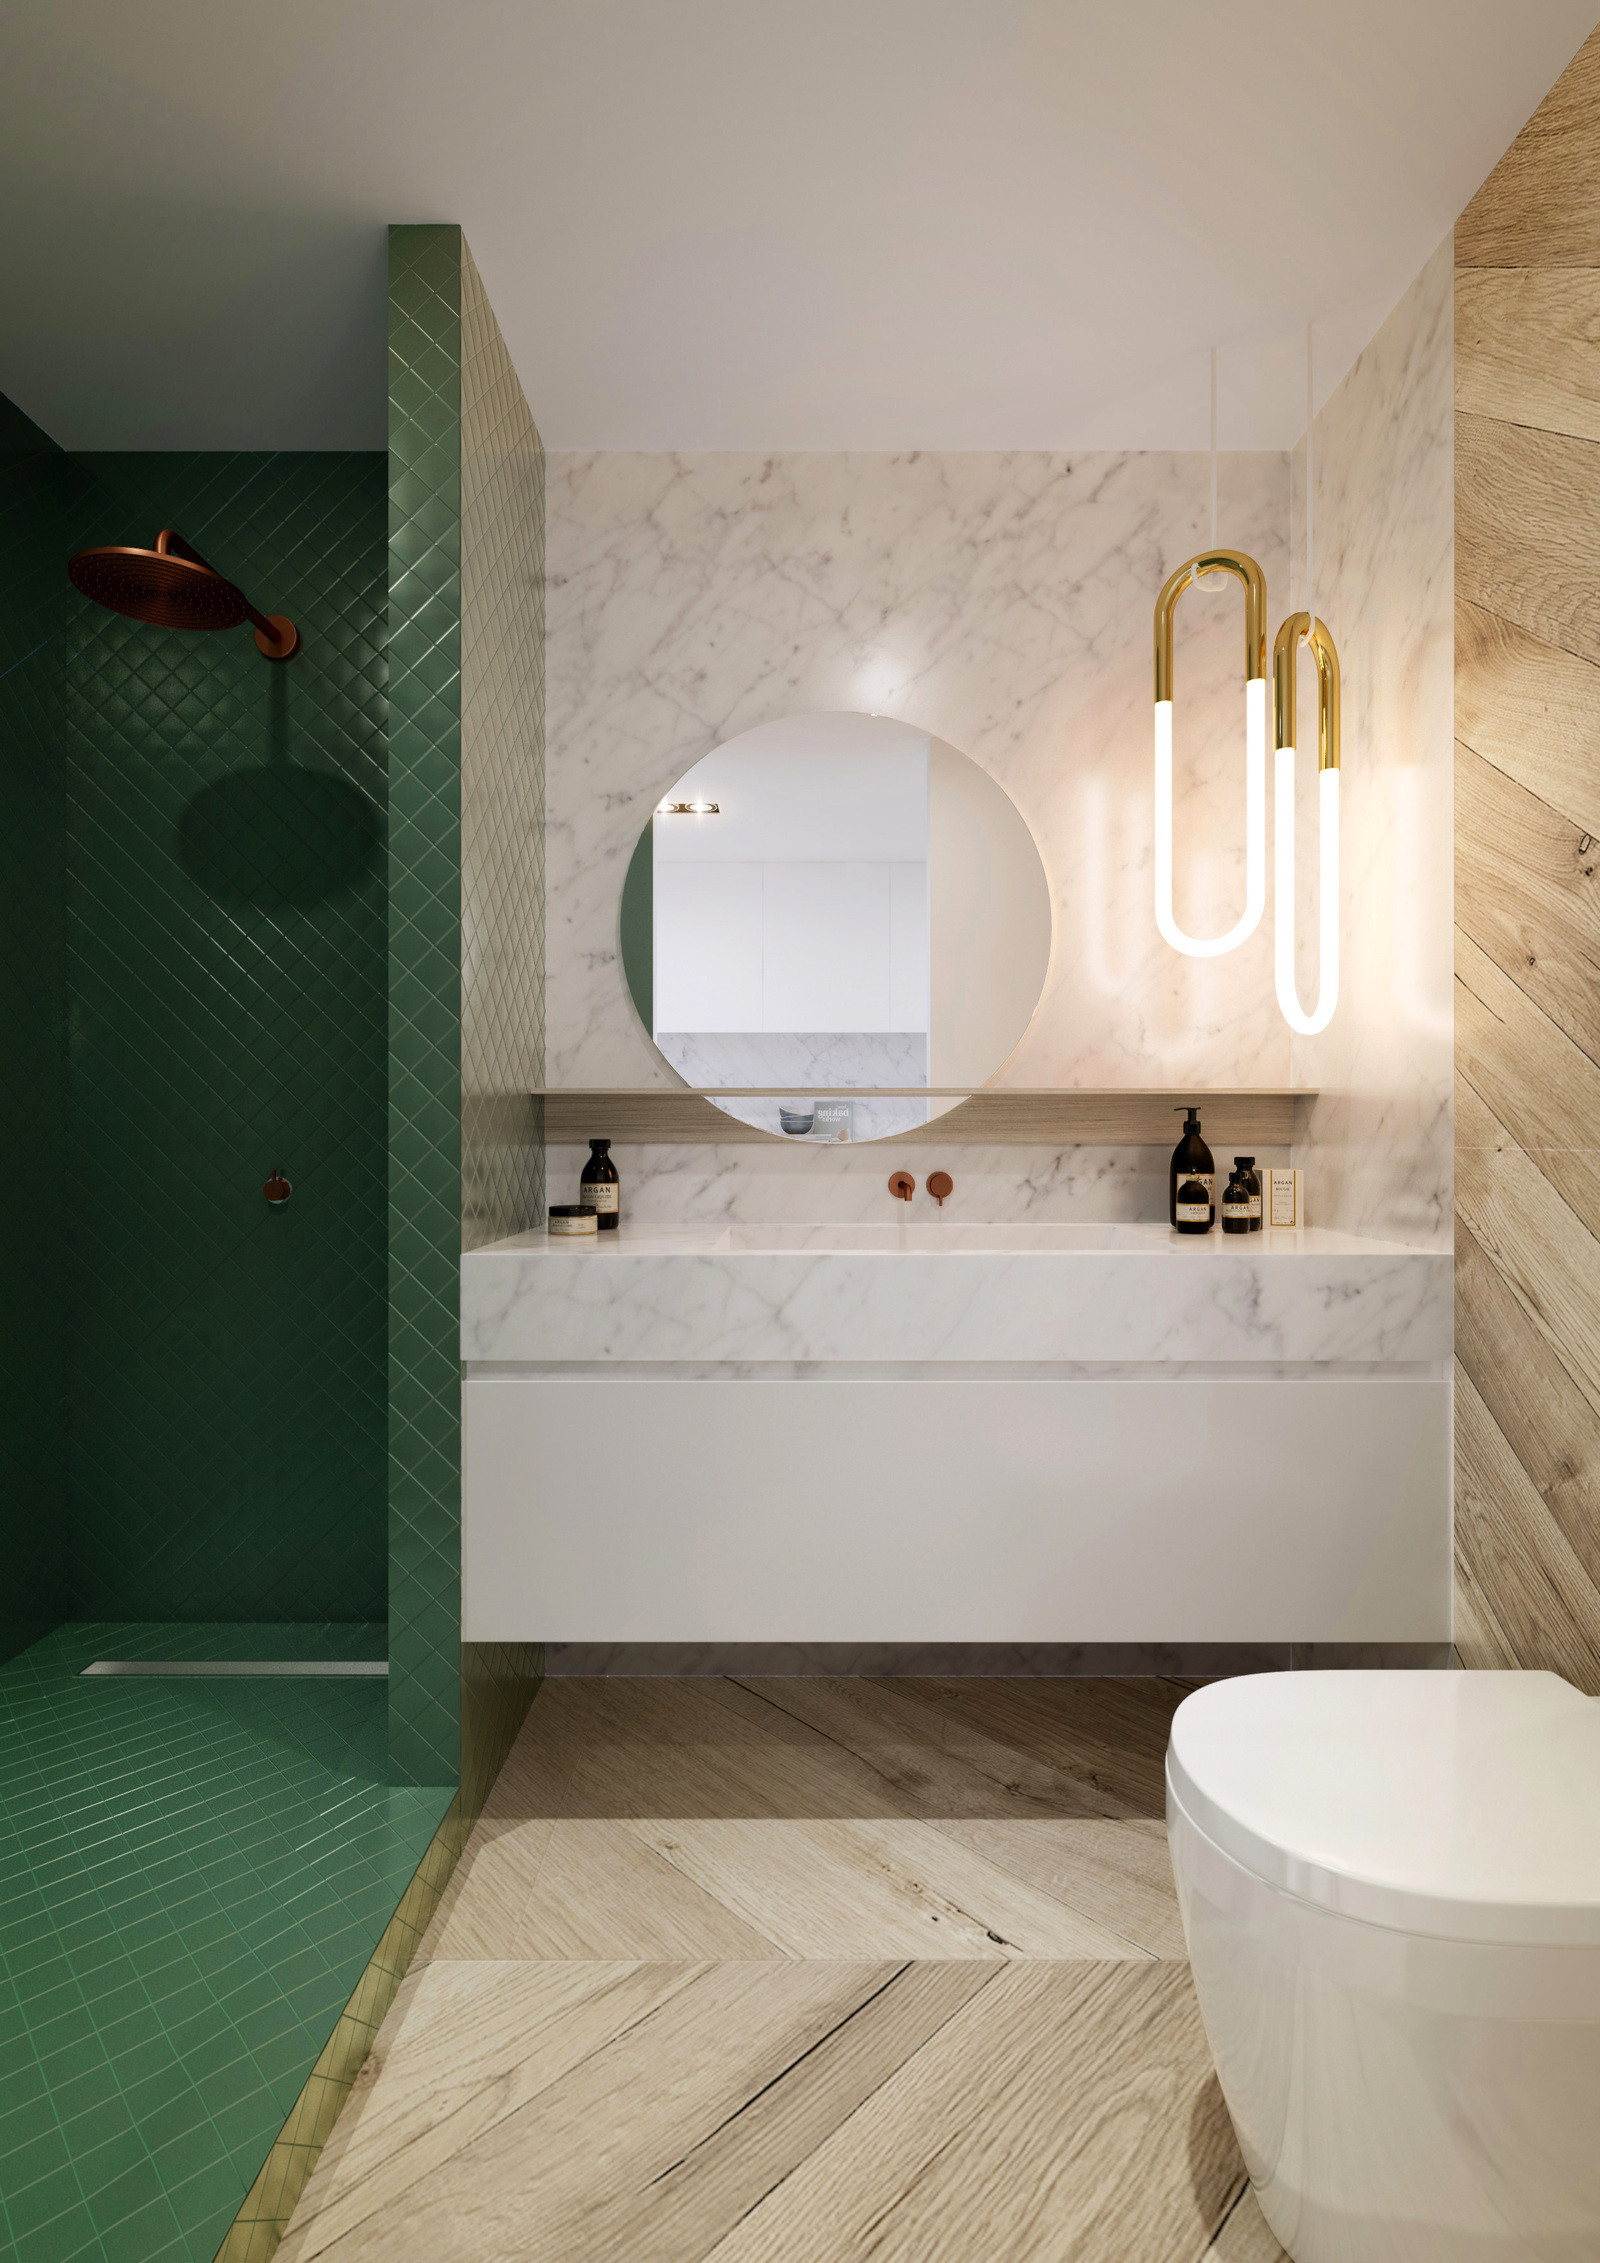 Green and cream bathroom